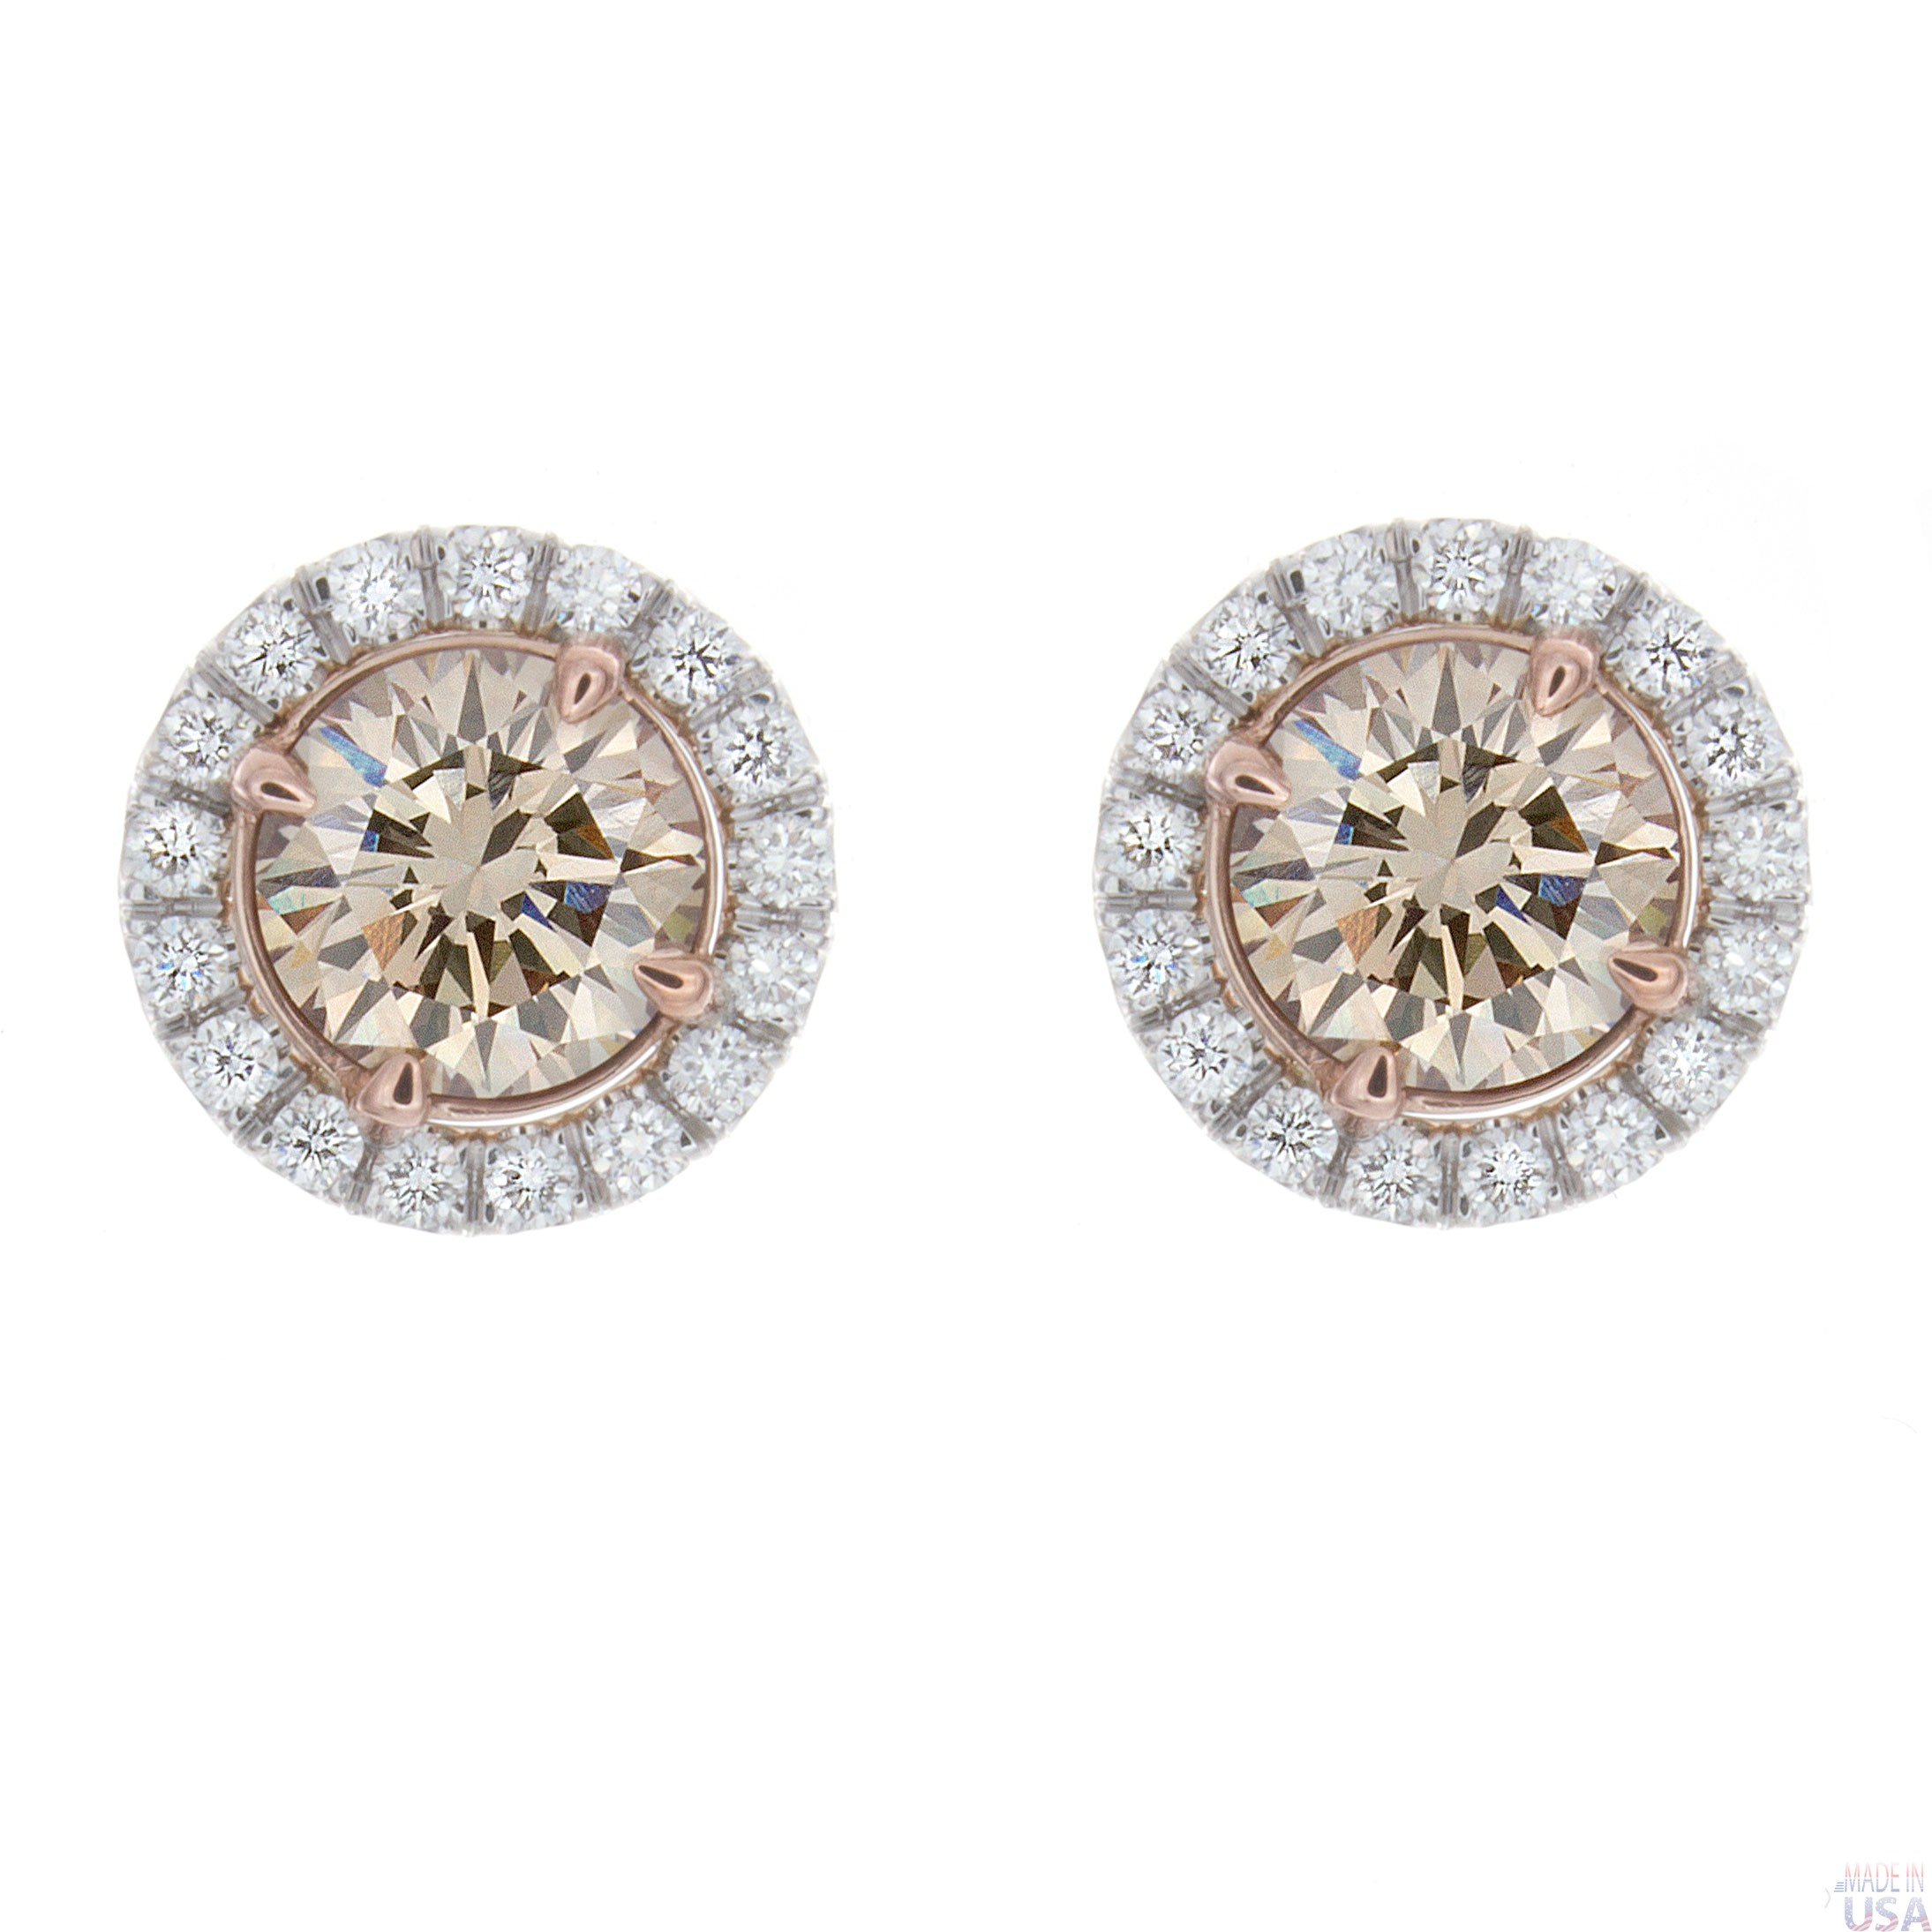 musti designs by champagne diamond collections stud starburst studs earrings